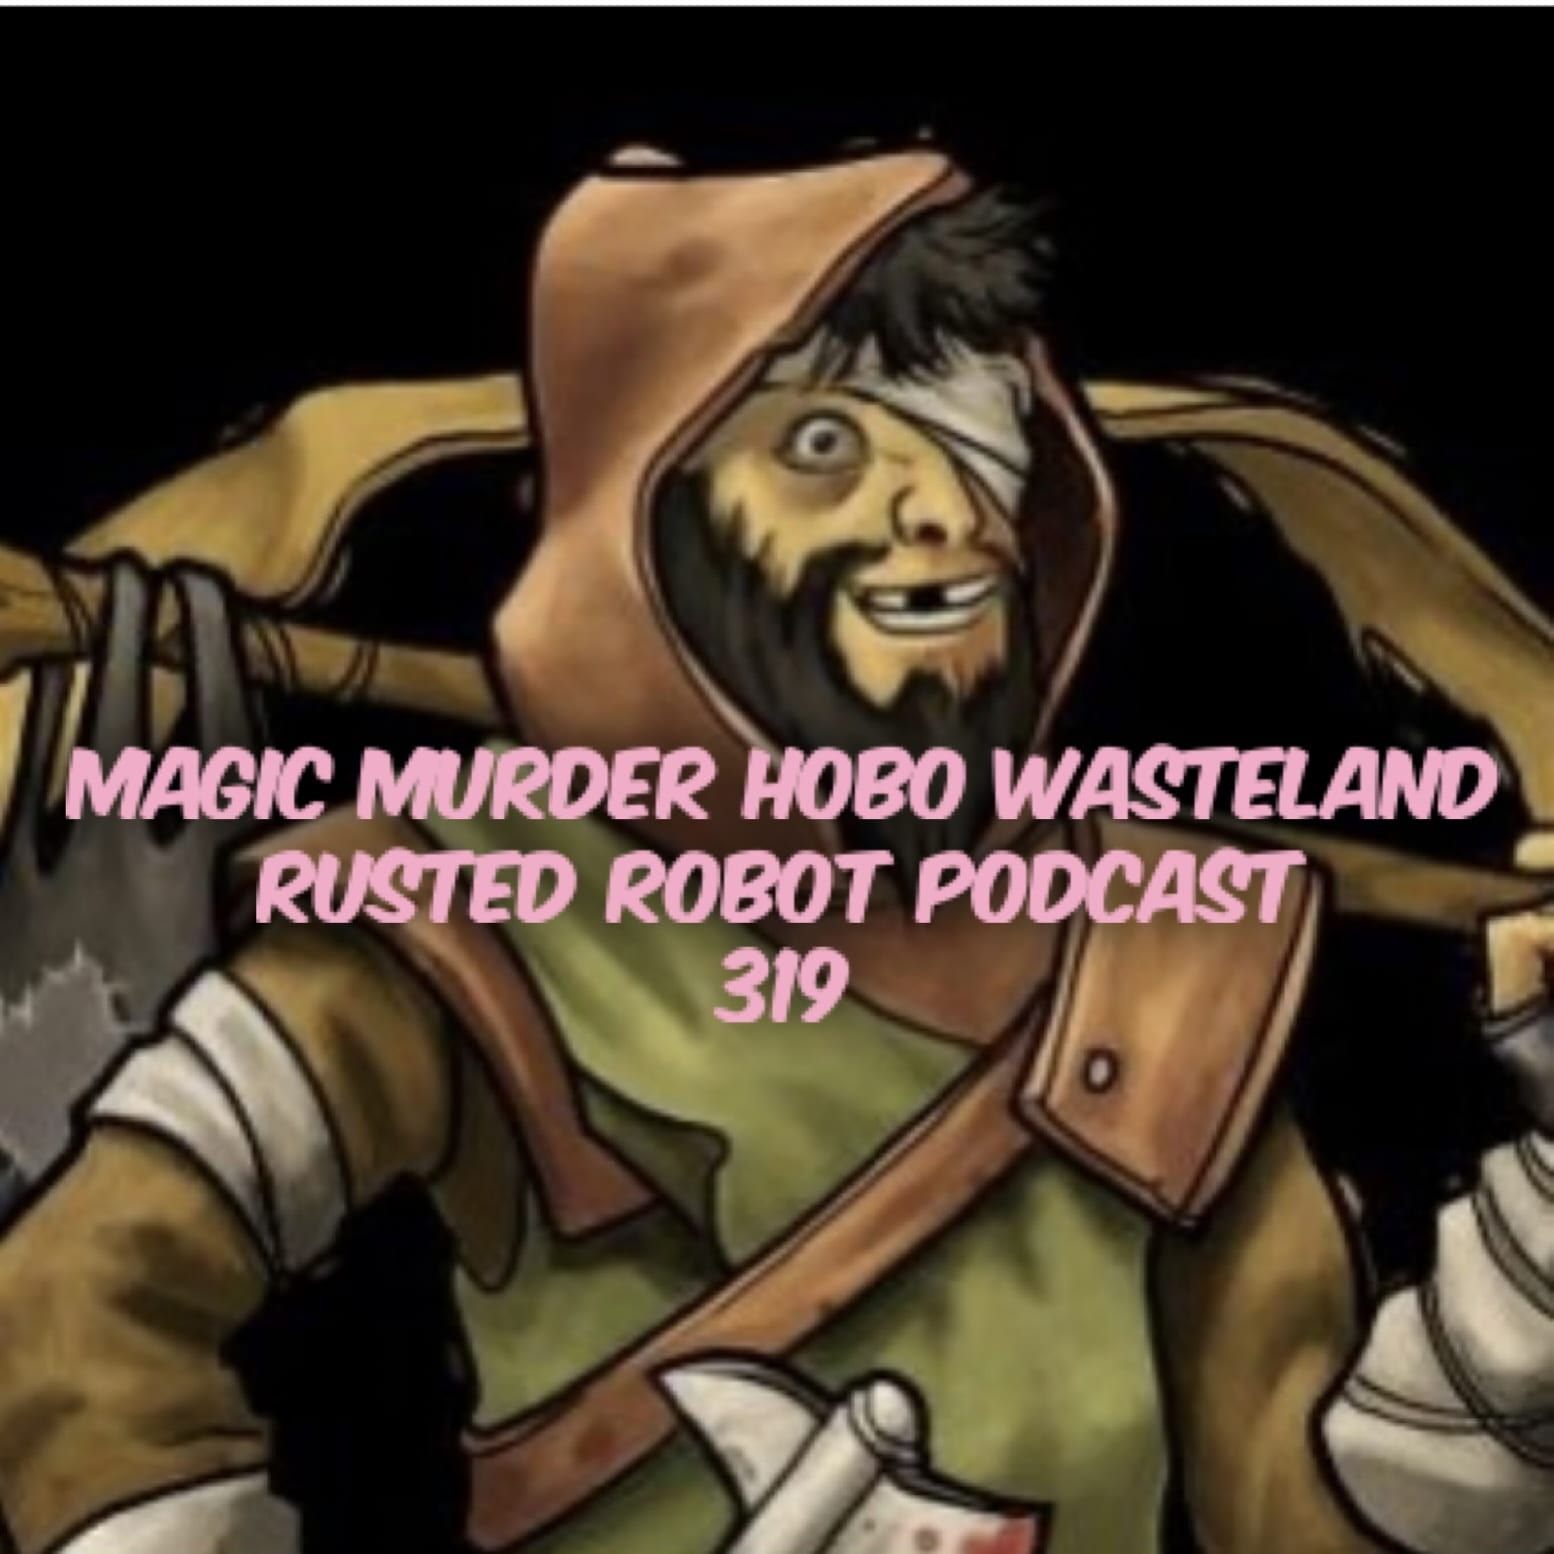 magic murder hobo